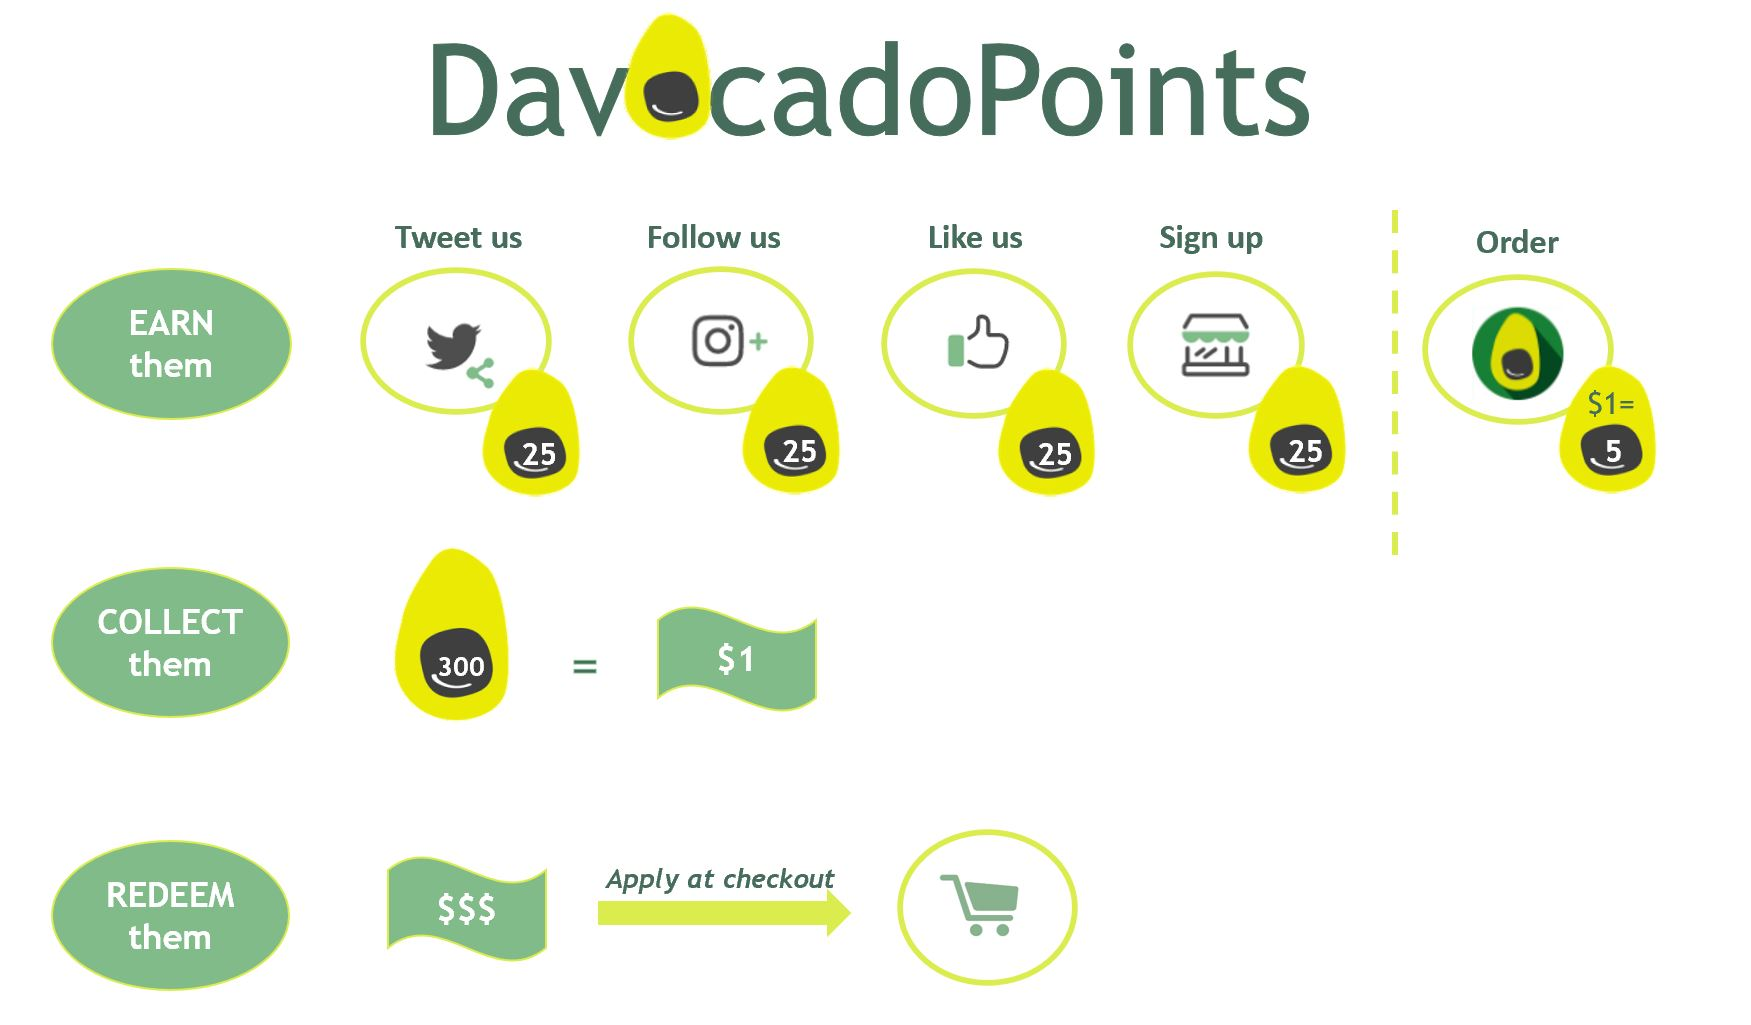 Learn how to earn DavocadoPoints & Redeem rewards!